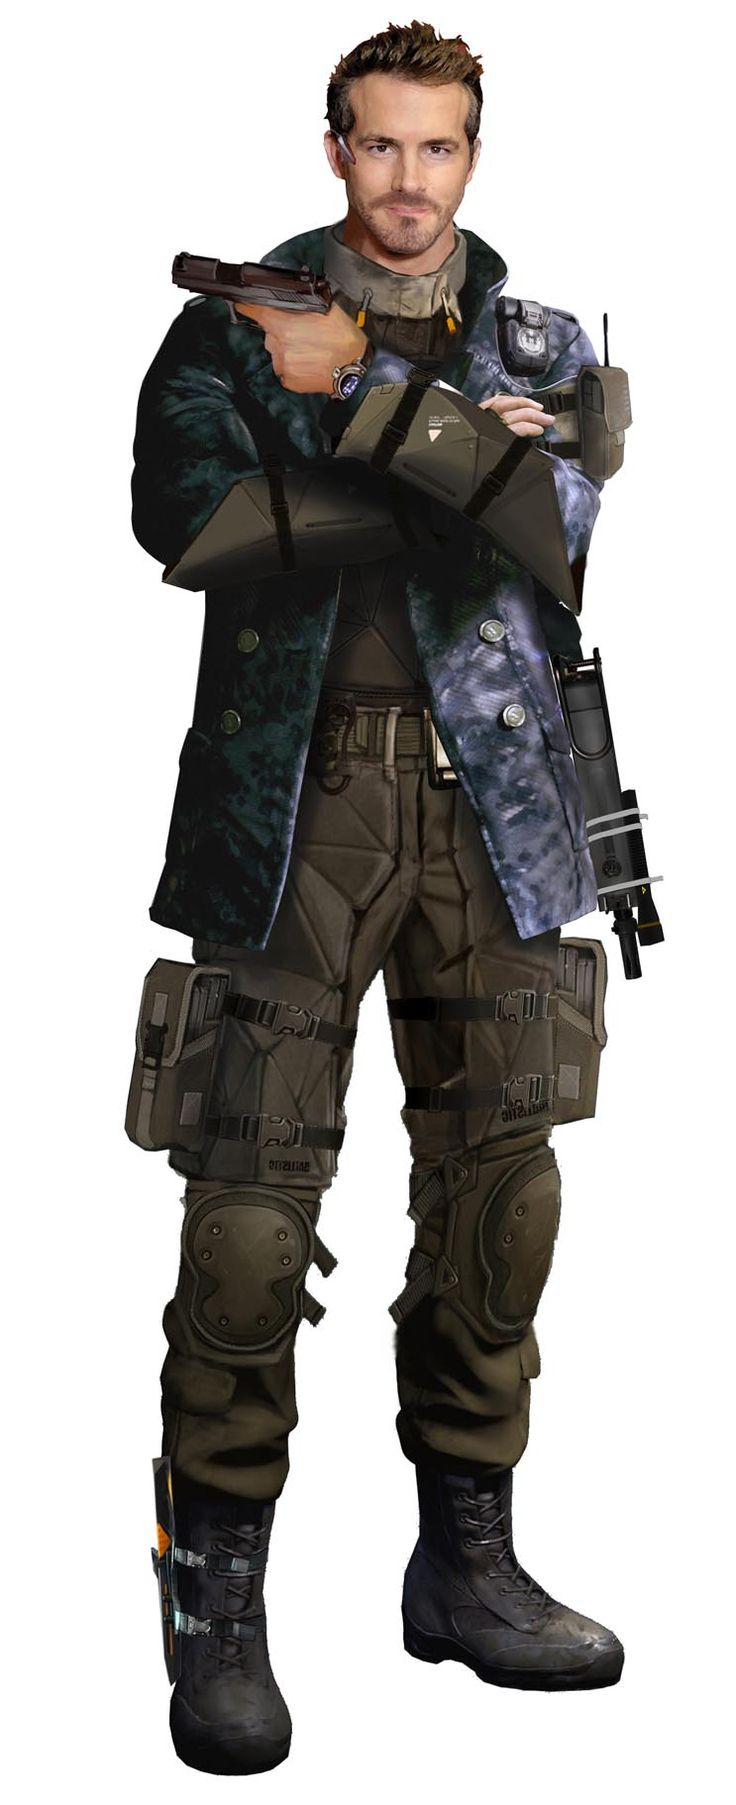 Character Design Parka : Best images about rpg characters on pinterest armors